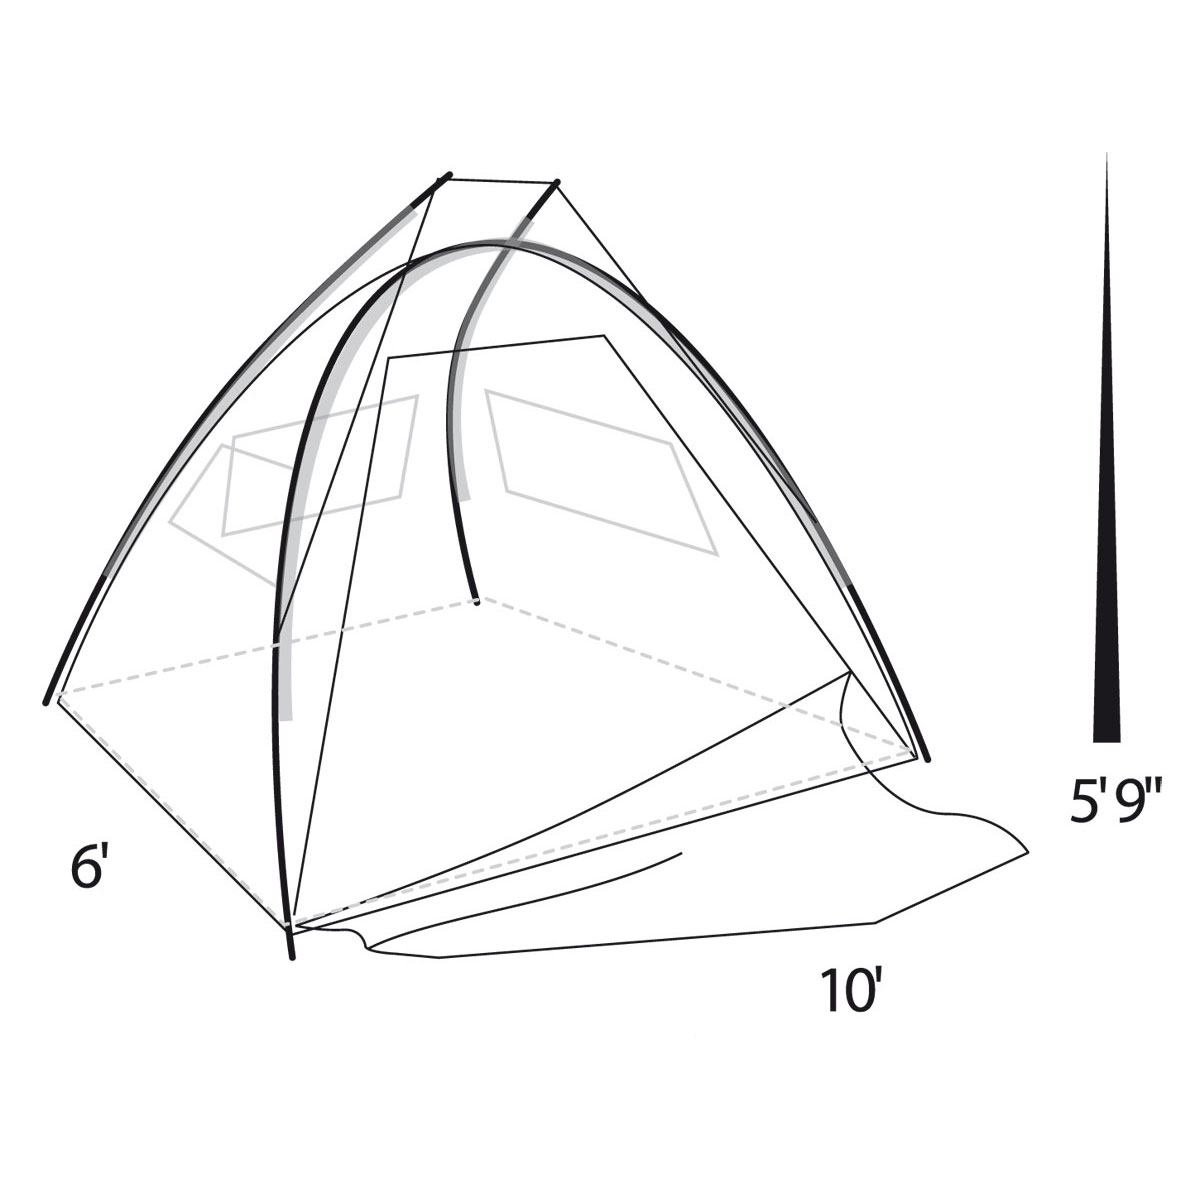 Costco Tents And Shade | Wiring Diagram Database